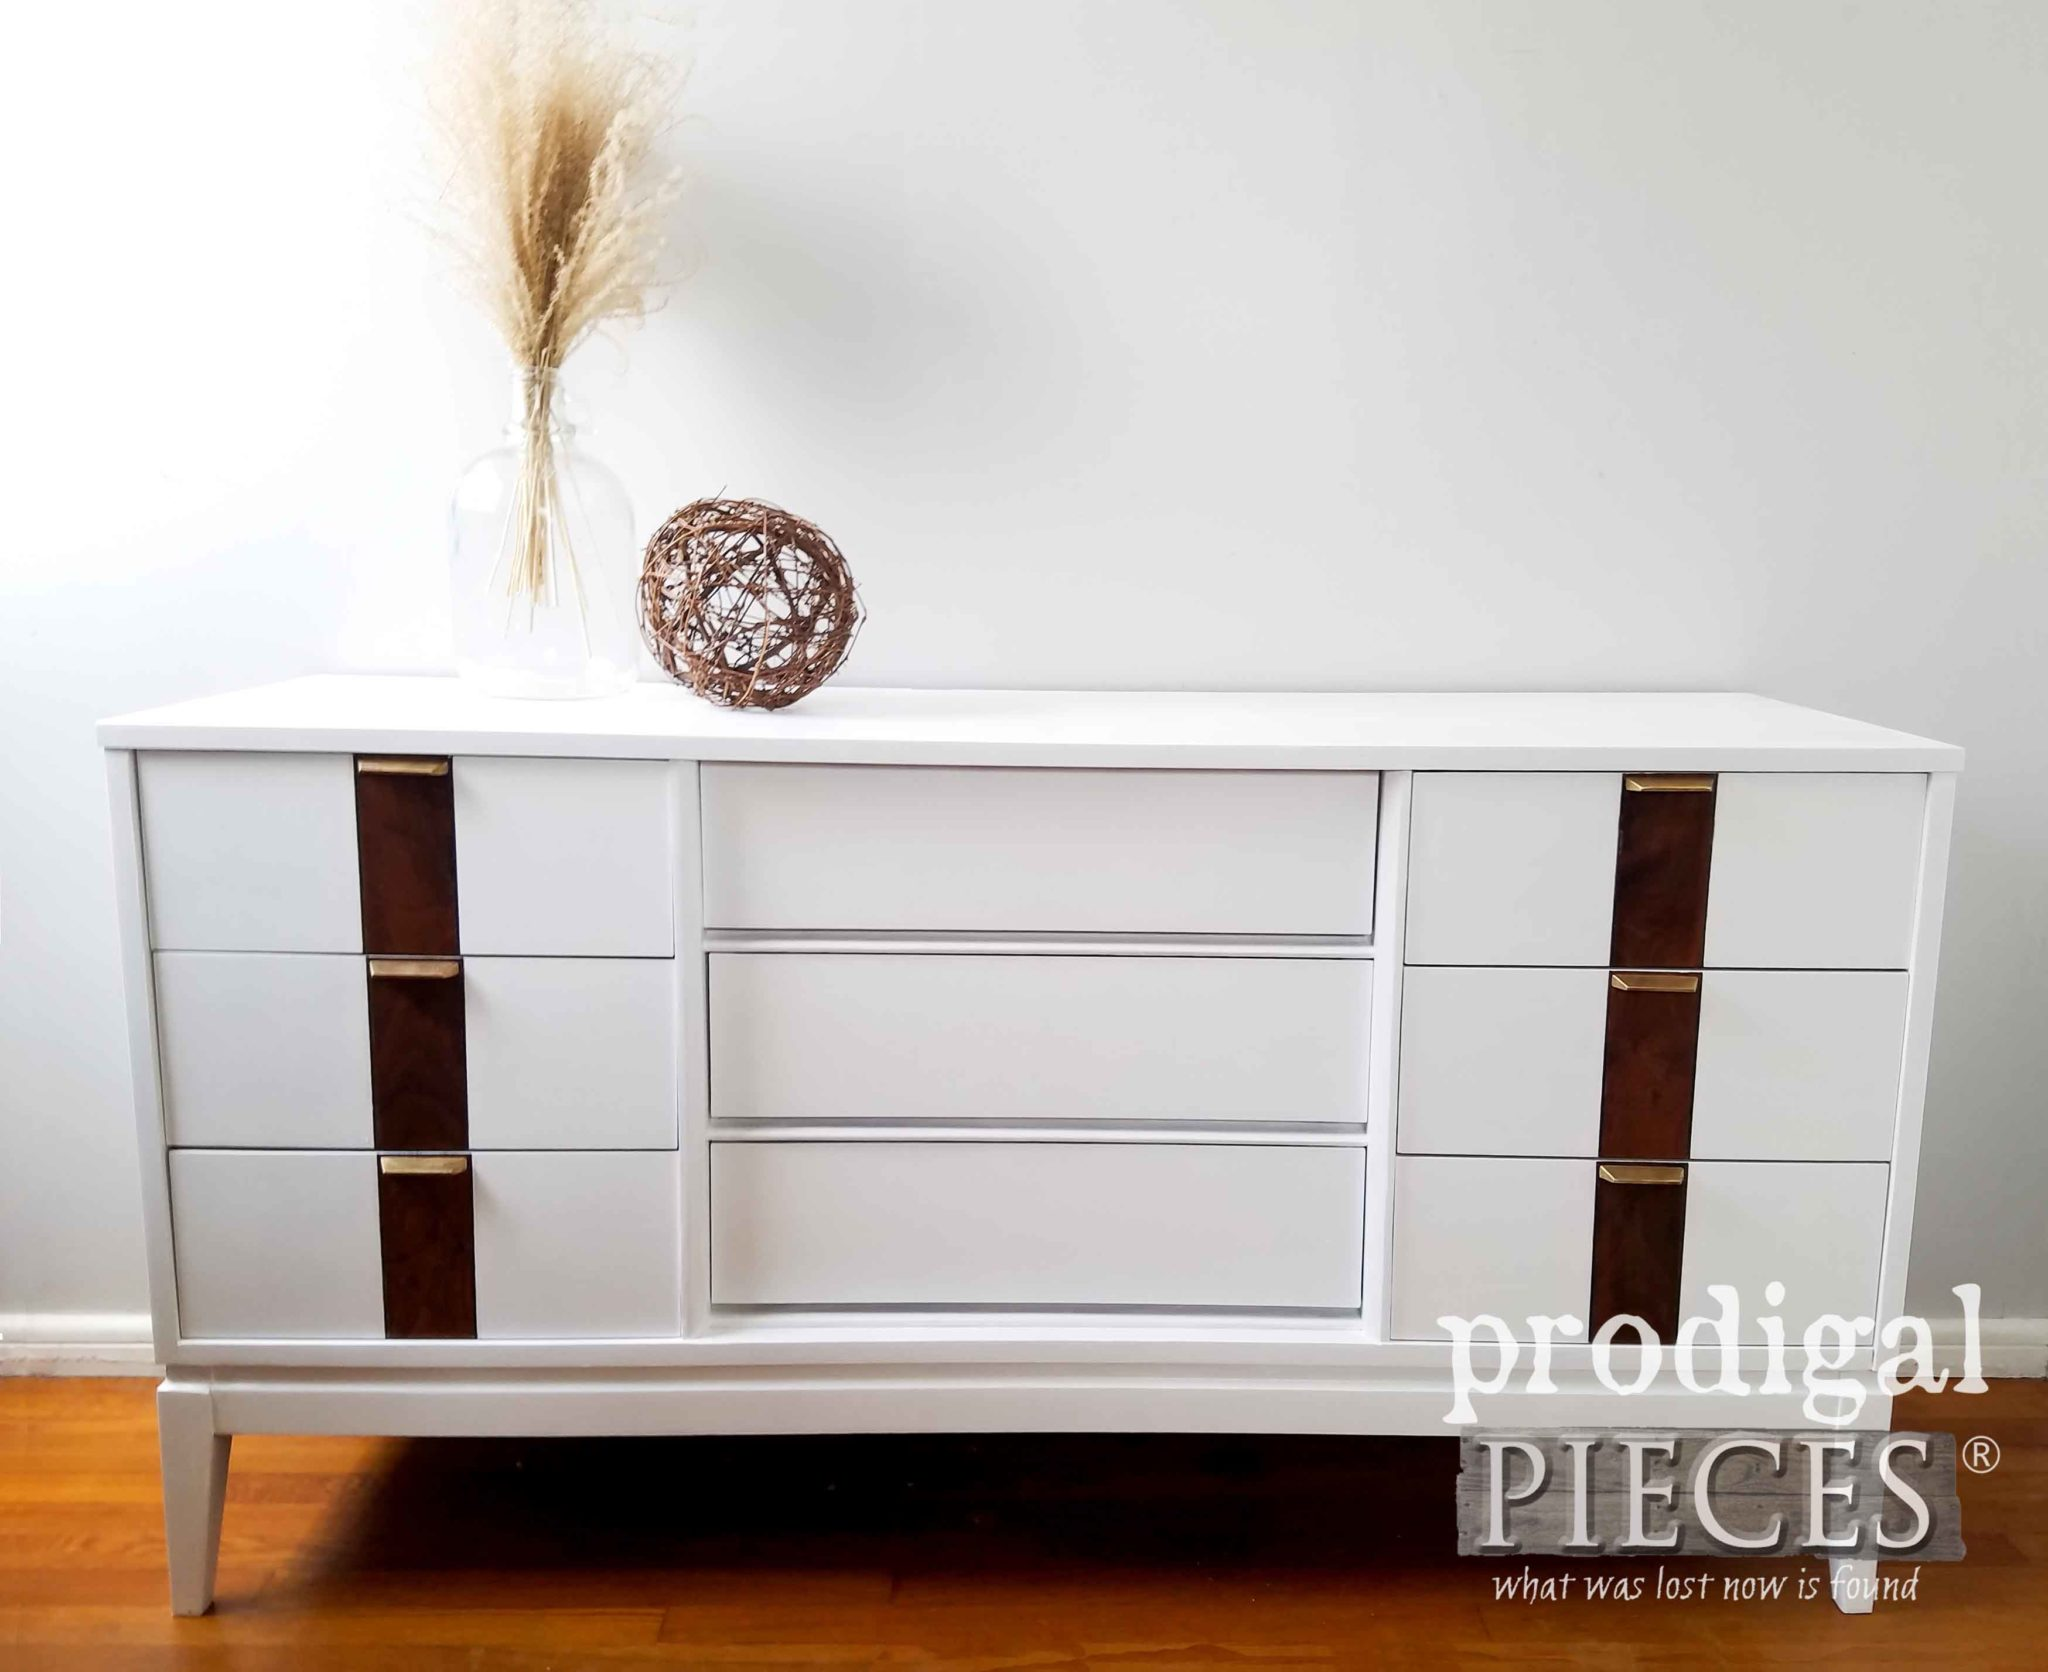 Solid Wood Mid Century Modern Dresser in White made by Stanley | Refinished by Larissa of Prodigal Pieces | prodigalpieces.com